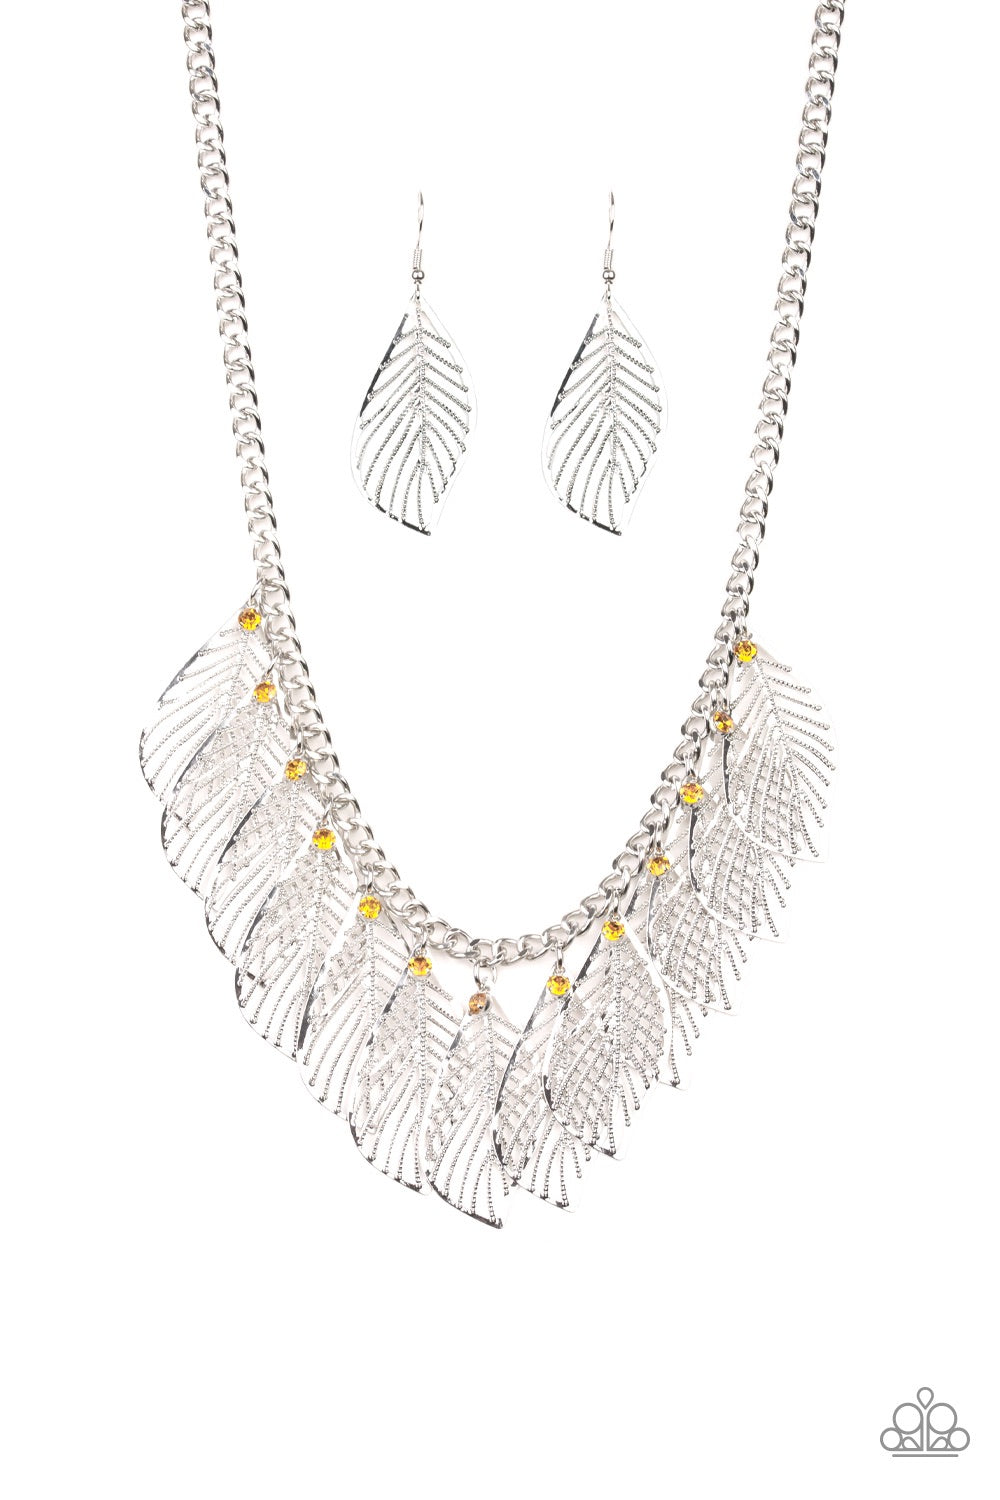 Feathery Foliage Yellow Necklace - Paparazzi - JewelTonez Jewelry